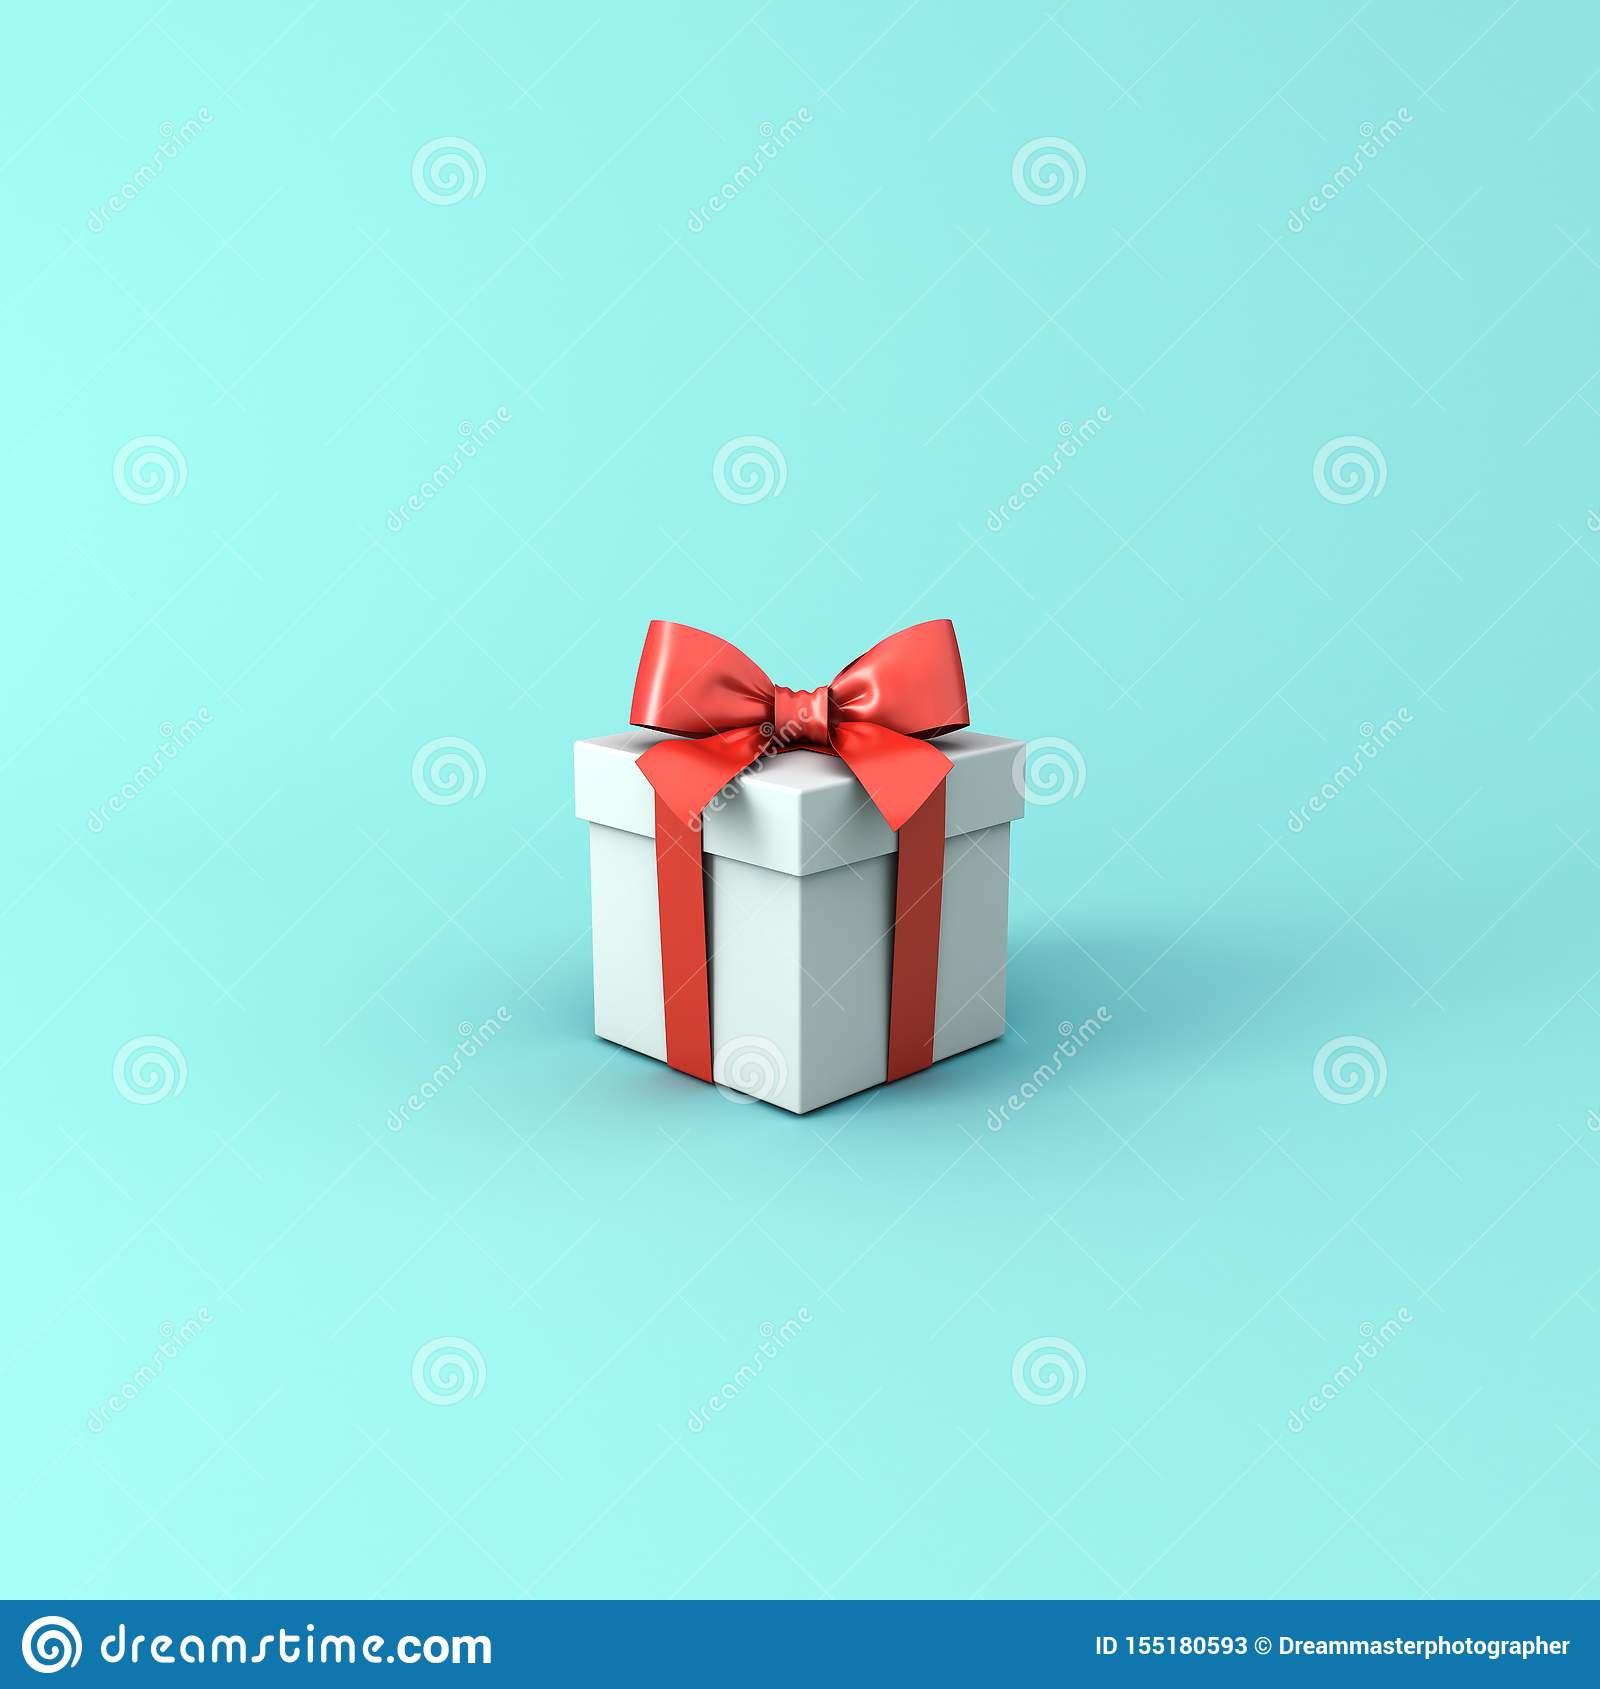 Gift box or Present box with red ribbon and bow isolated on light blue green pastel color background